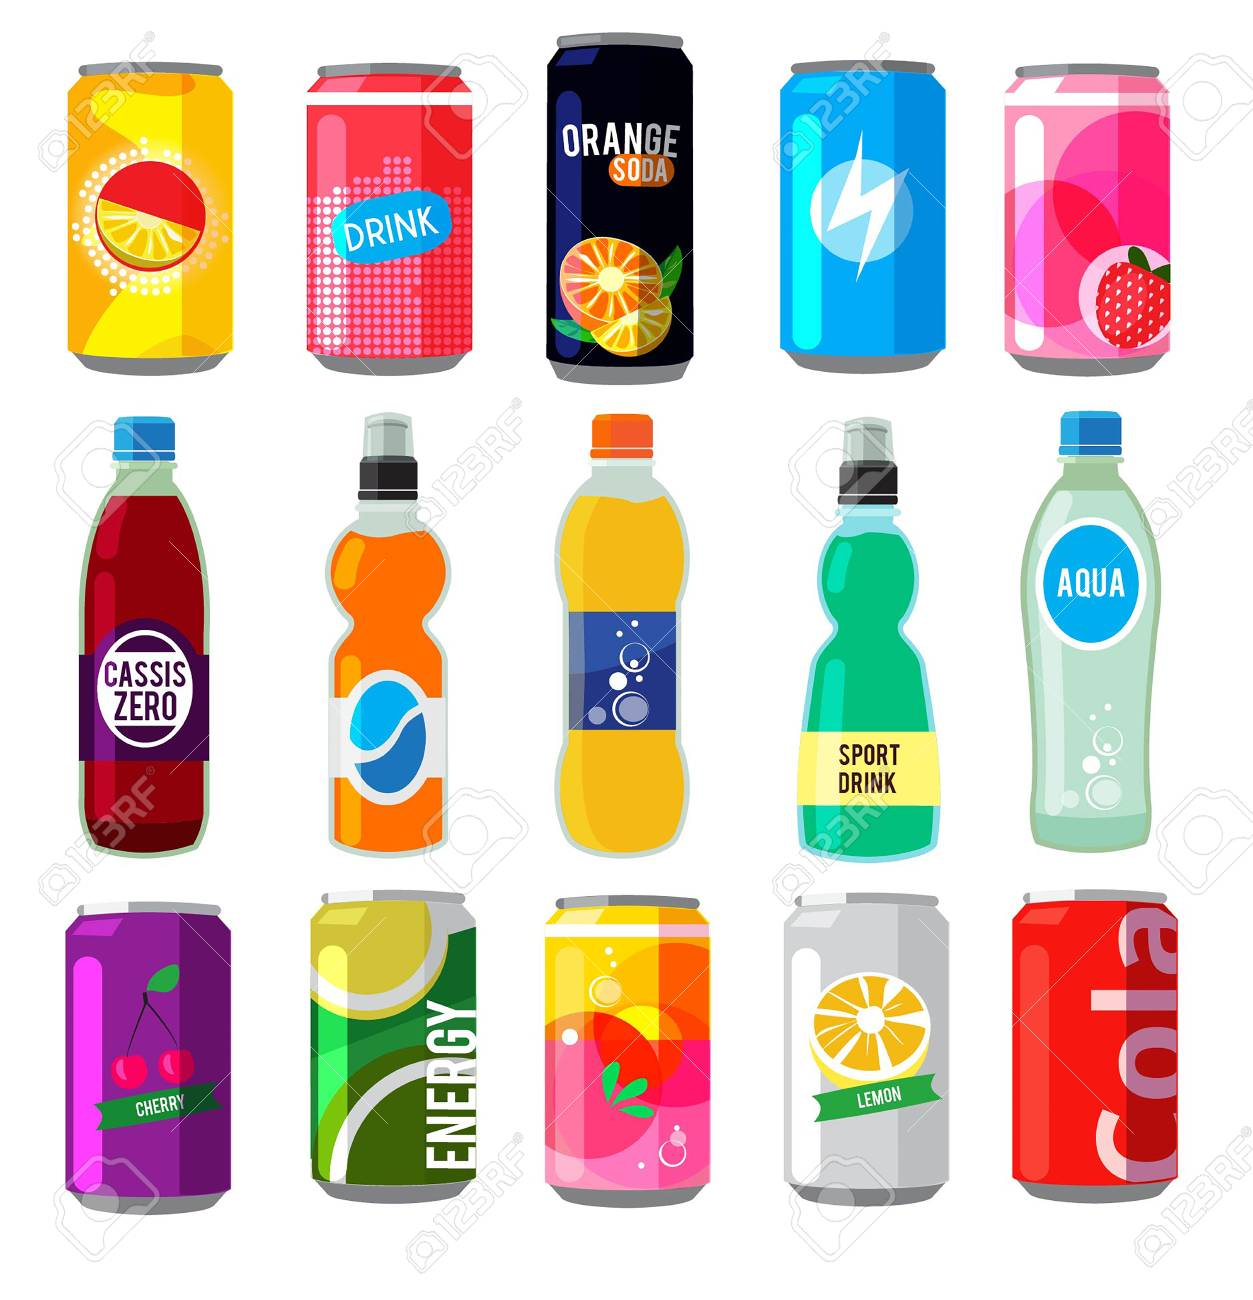 Fizzy drinks in glass bottles. Colored vector pictures.